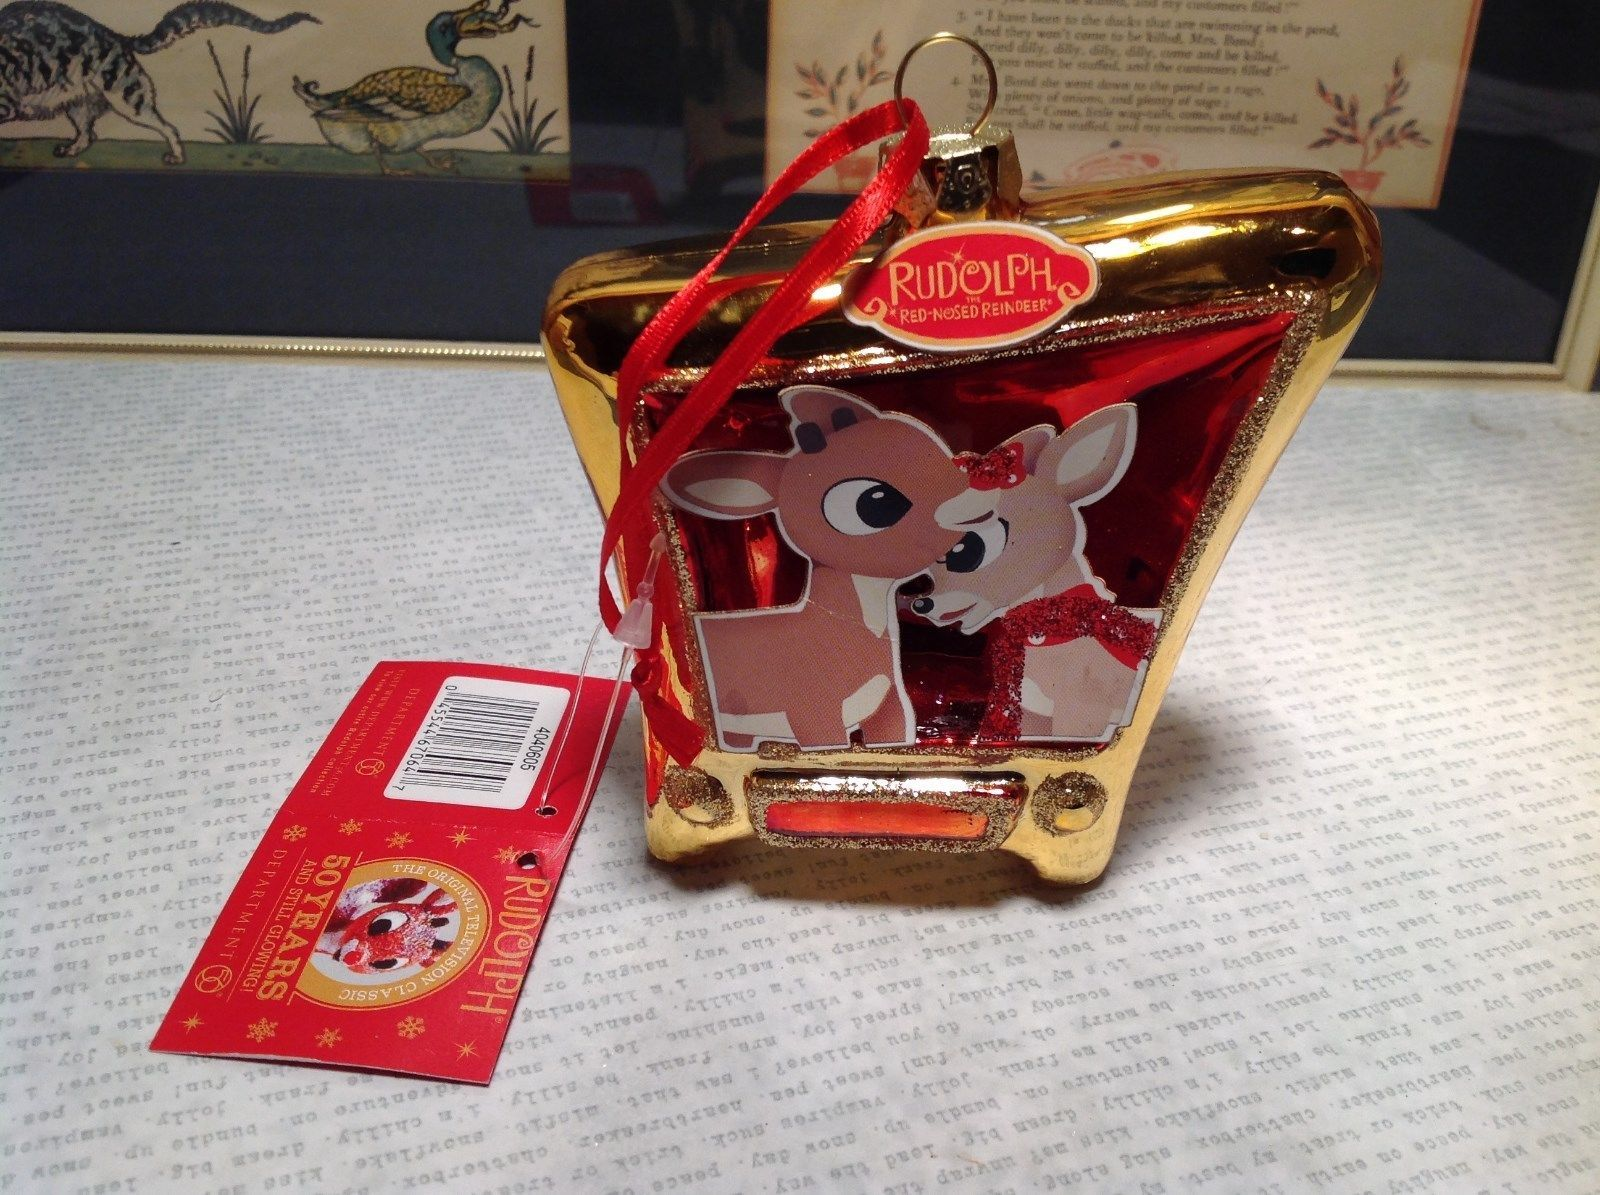 50 Years Rudolph Red Nosed Reindeer Glass TV Shaped Gold Tone Ornament